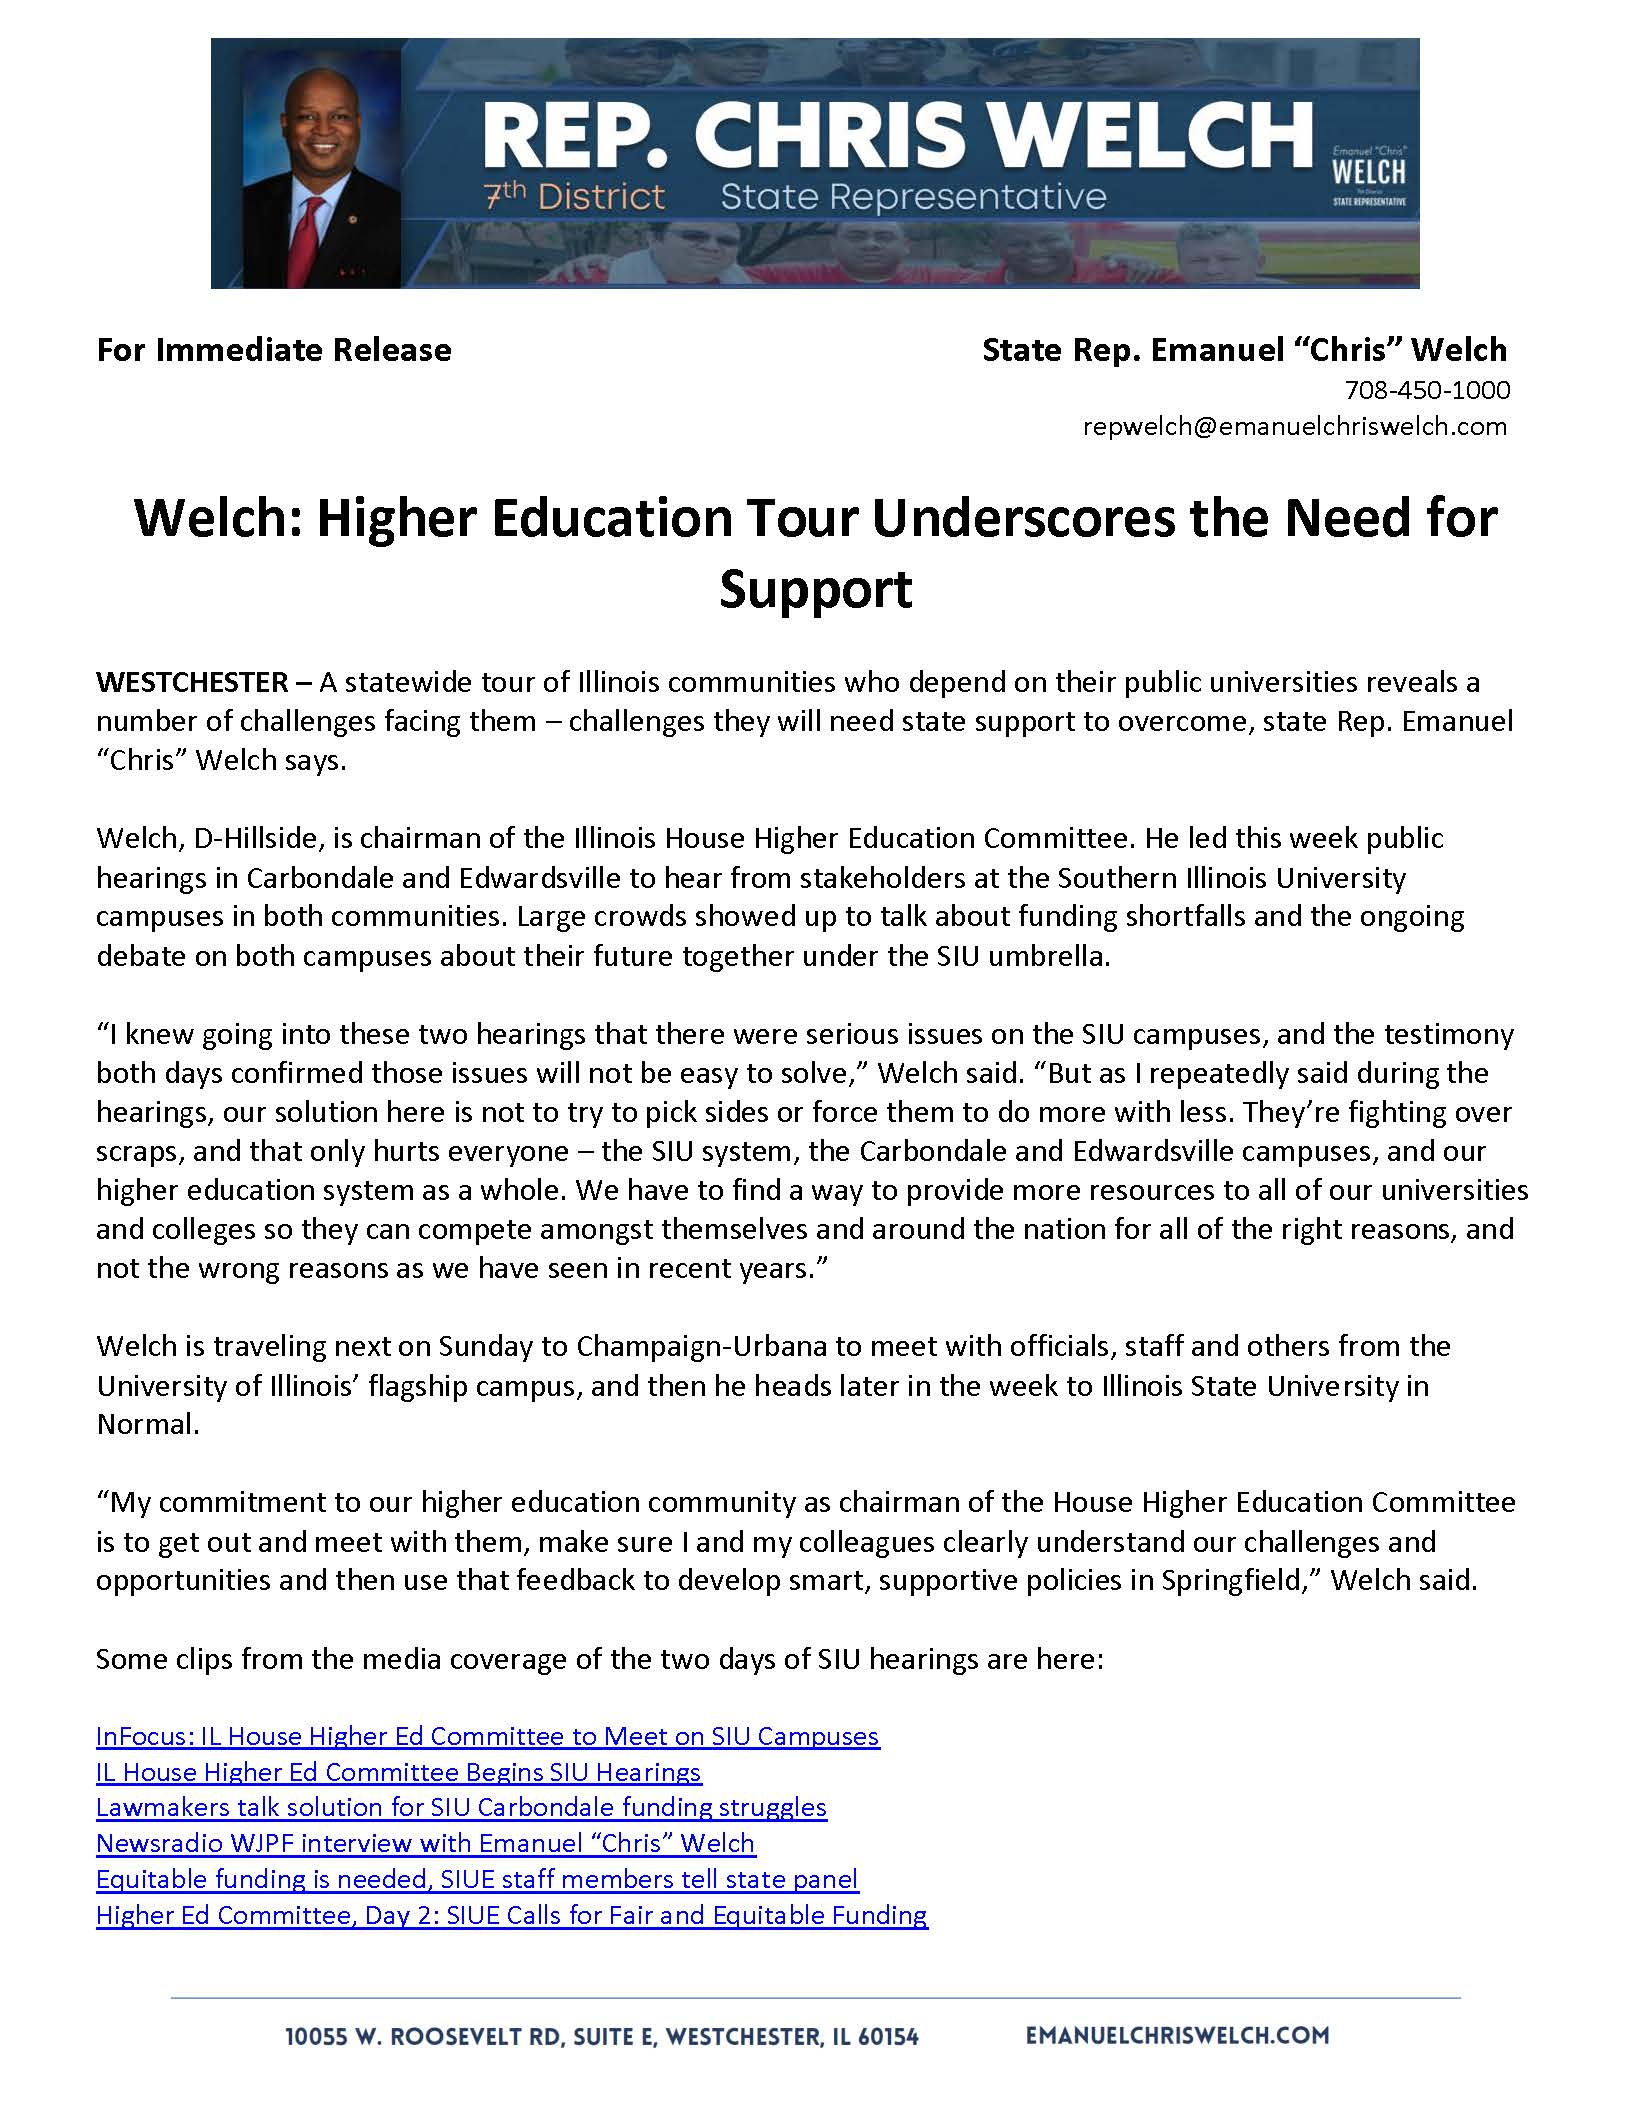 Welch: Higher Education Tour Underscores the Need for Support